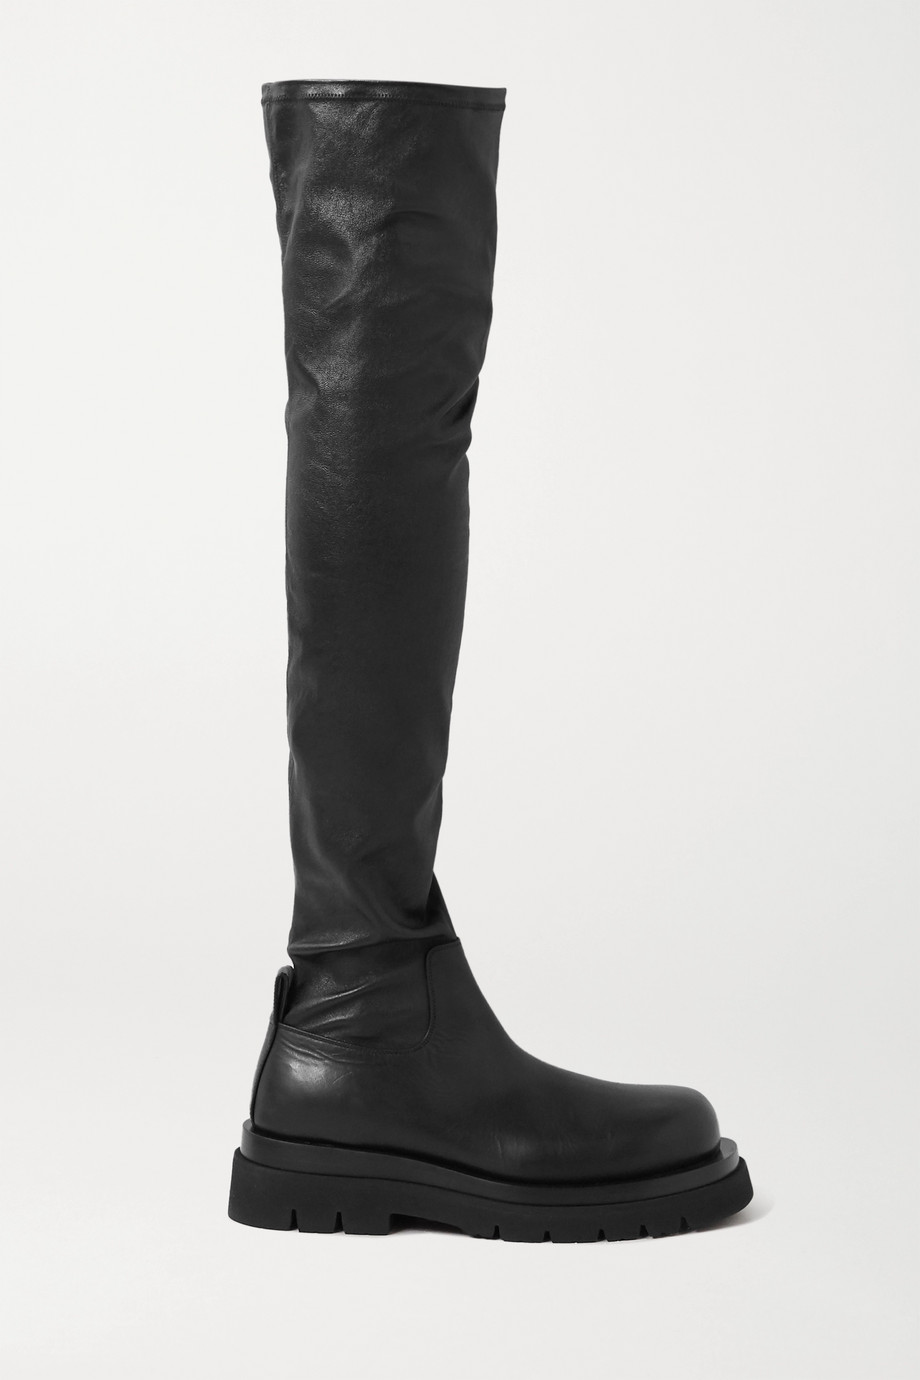 Bottega Veneta Rubber-trimmed leather over-the-knee boots